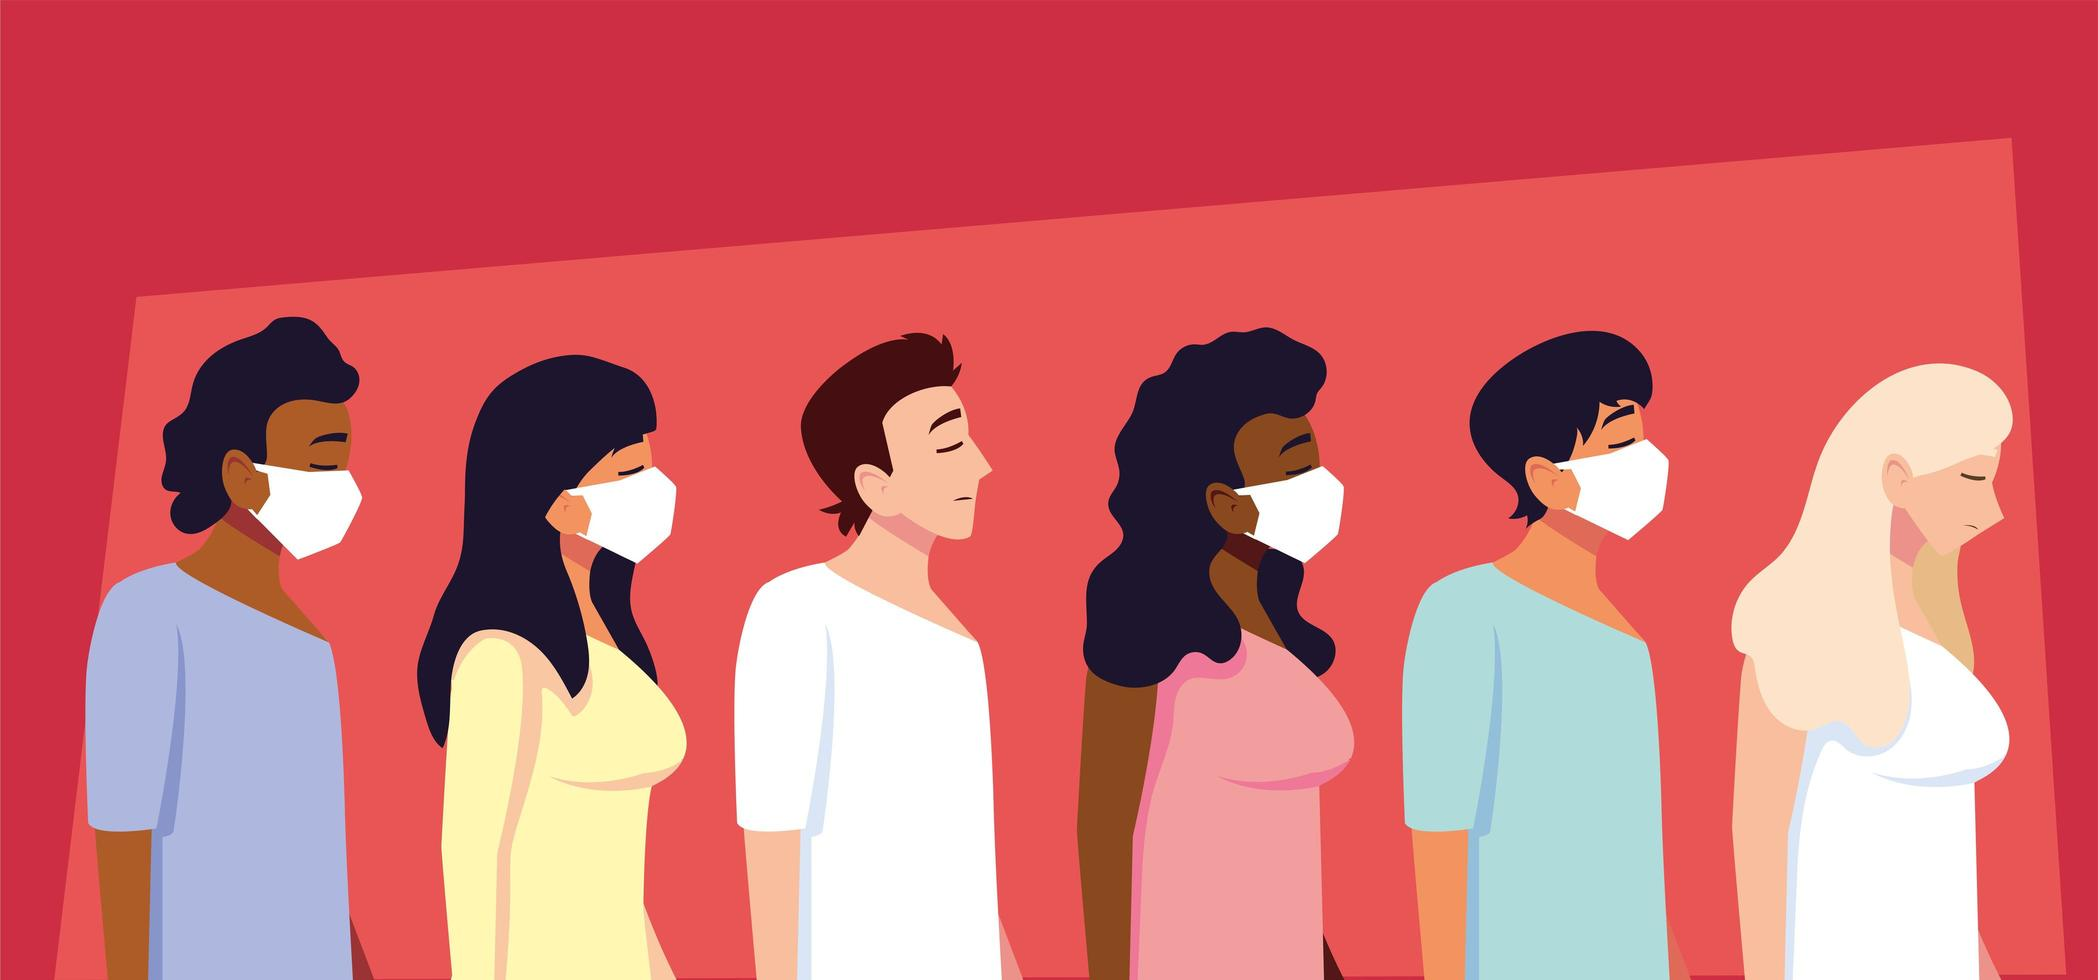 Group of people using medical face mask vector